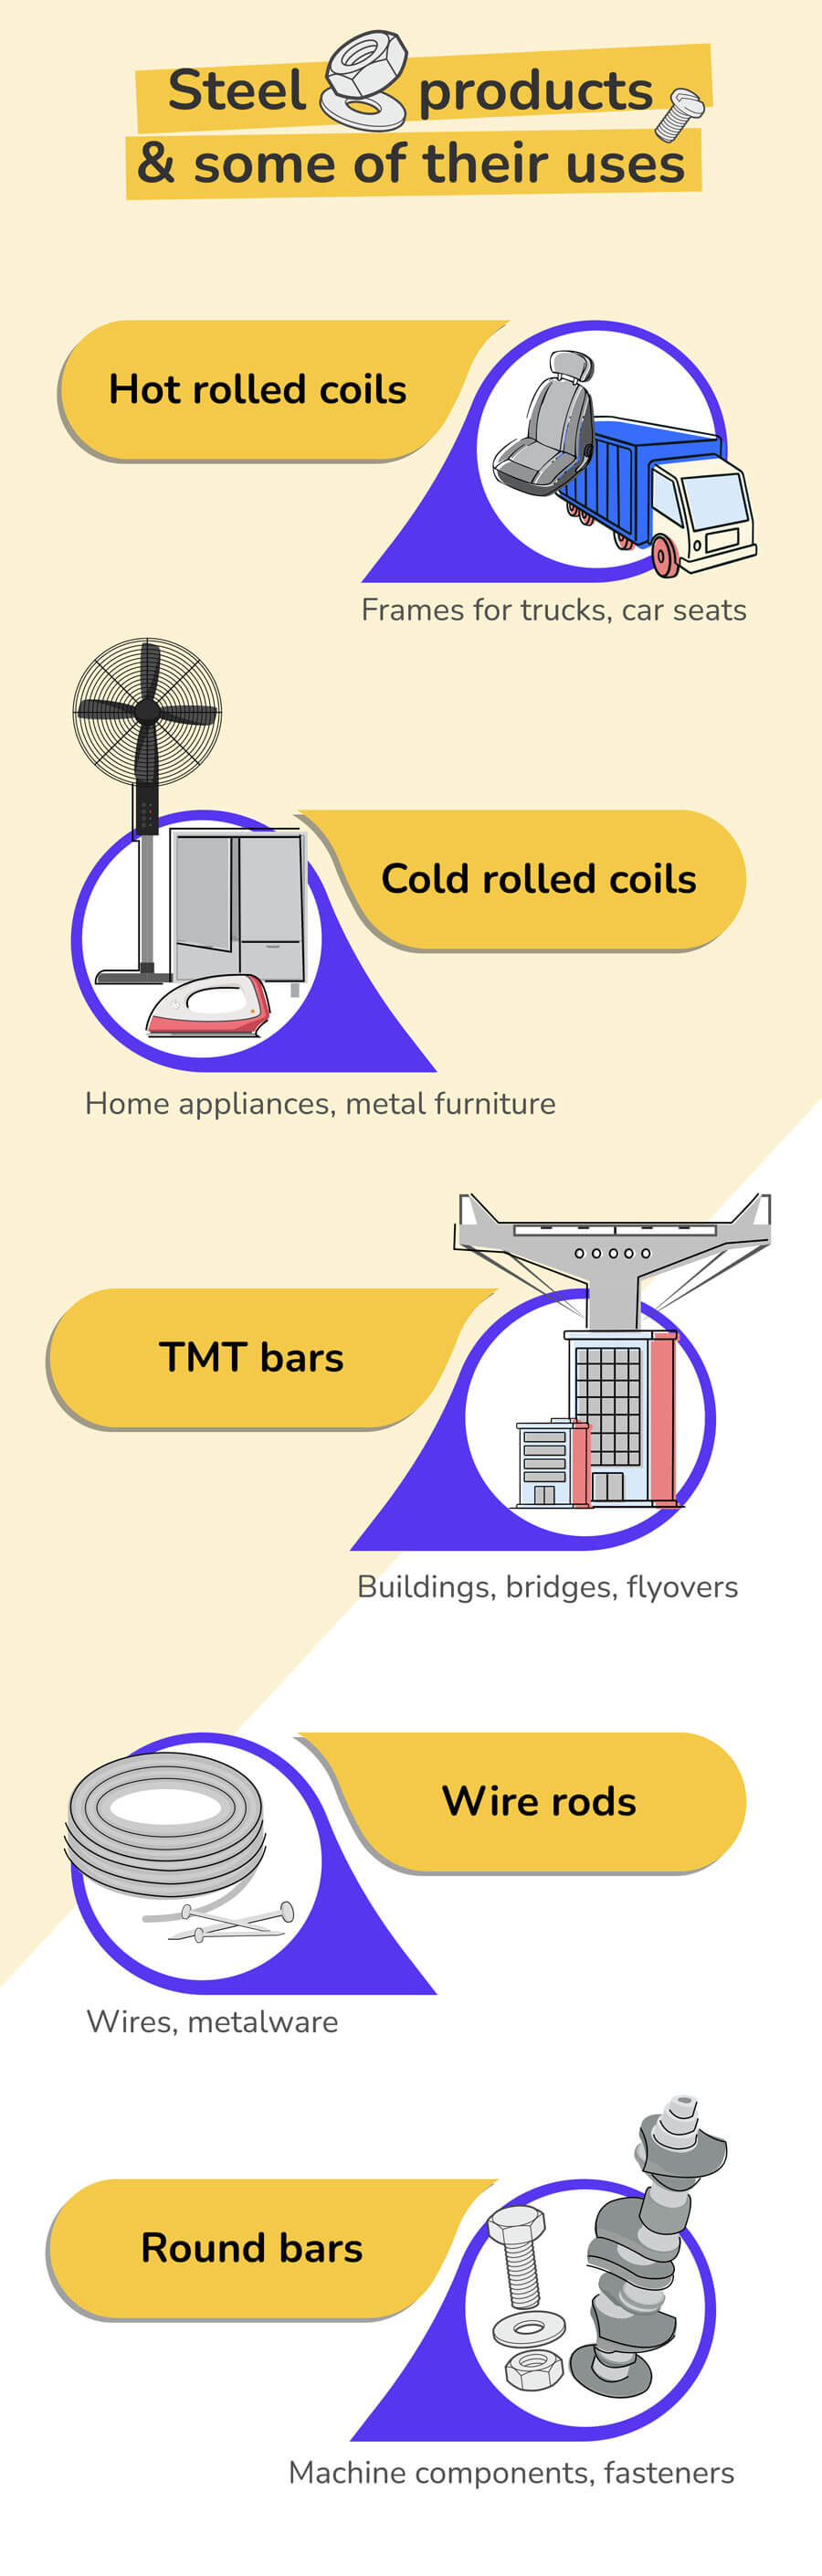 Steel products and their uses